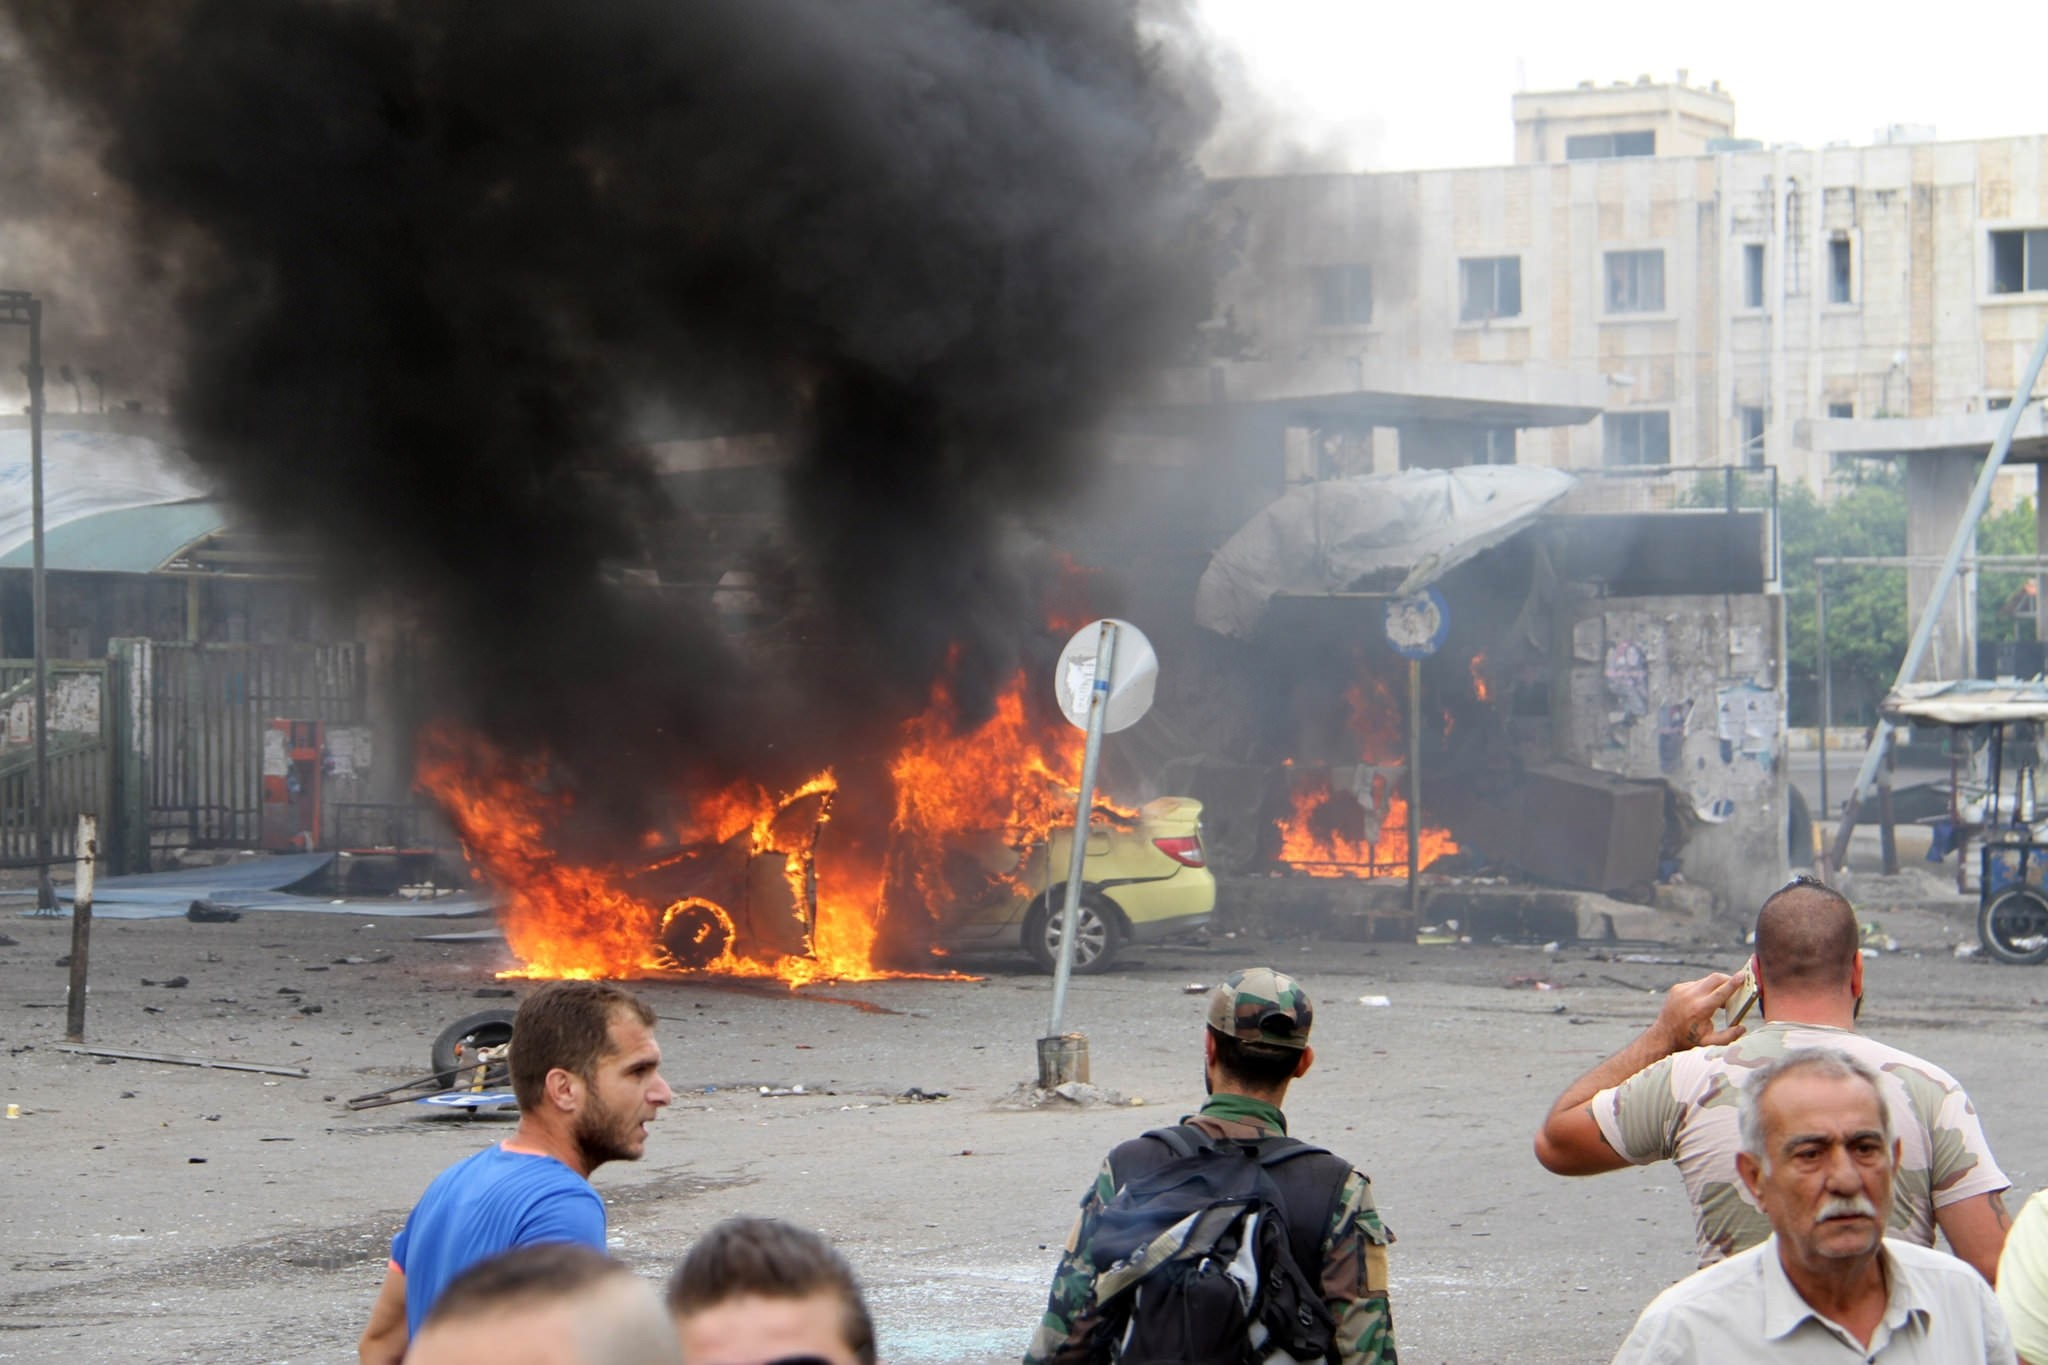 A Syrian army soldier and civilians inspect the damage after explosions hit the Syrian city of Tartous, in this handout picture provided by SANA on May 23, 2016.